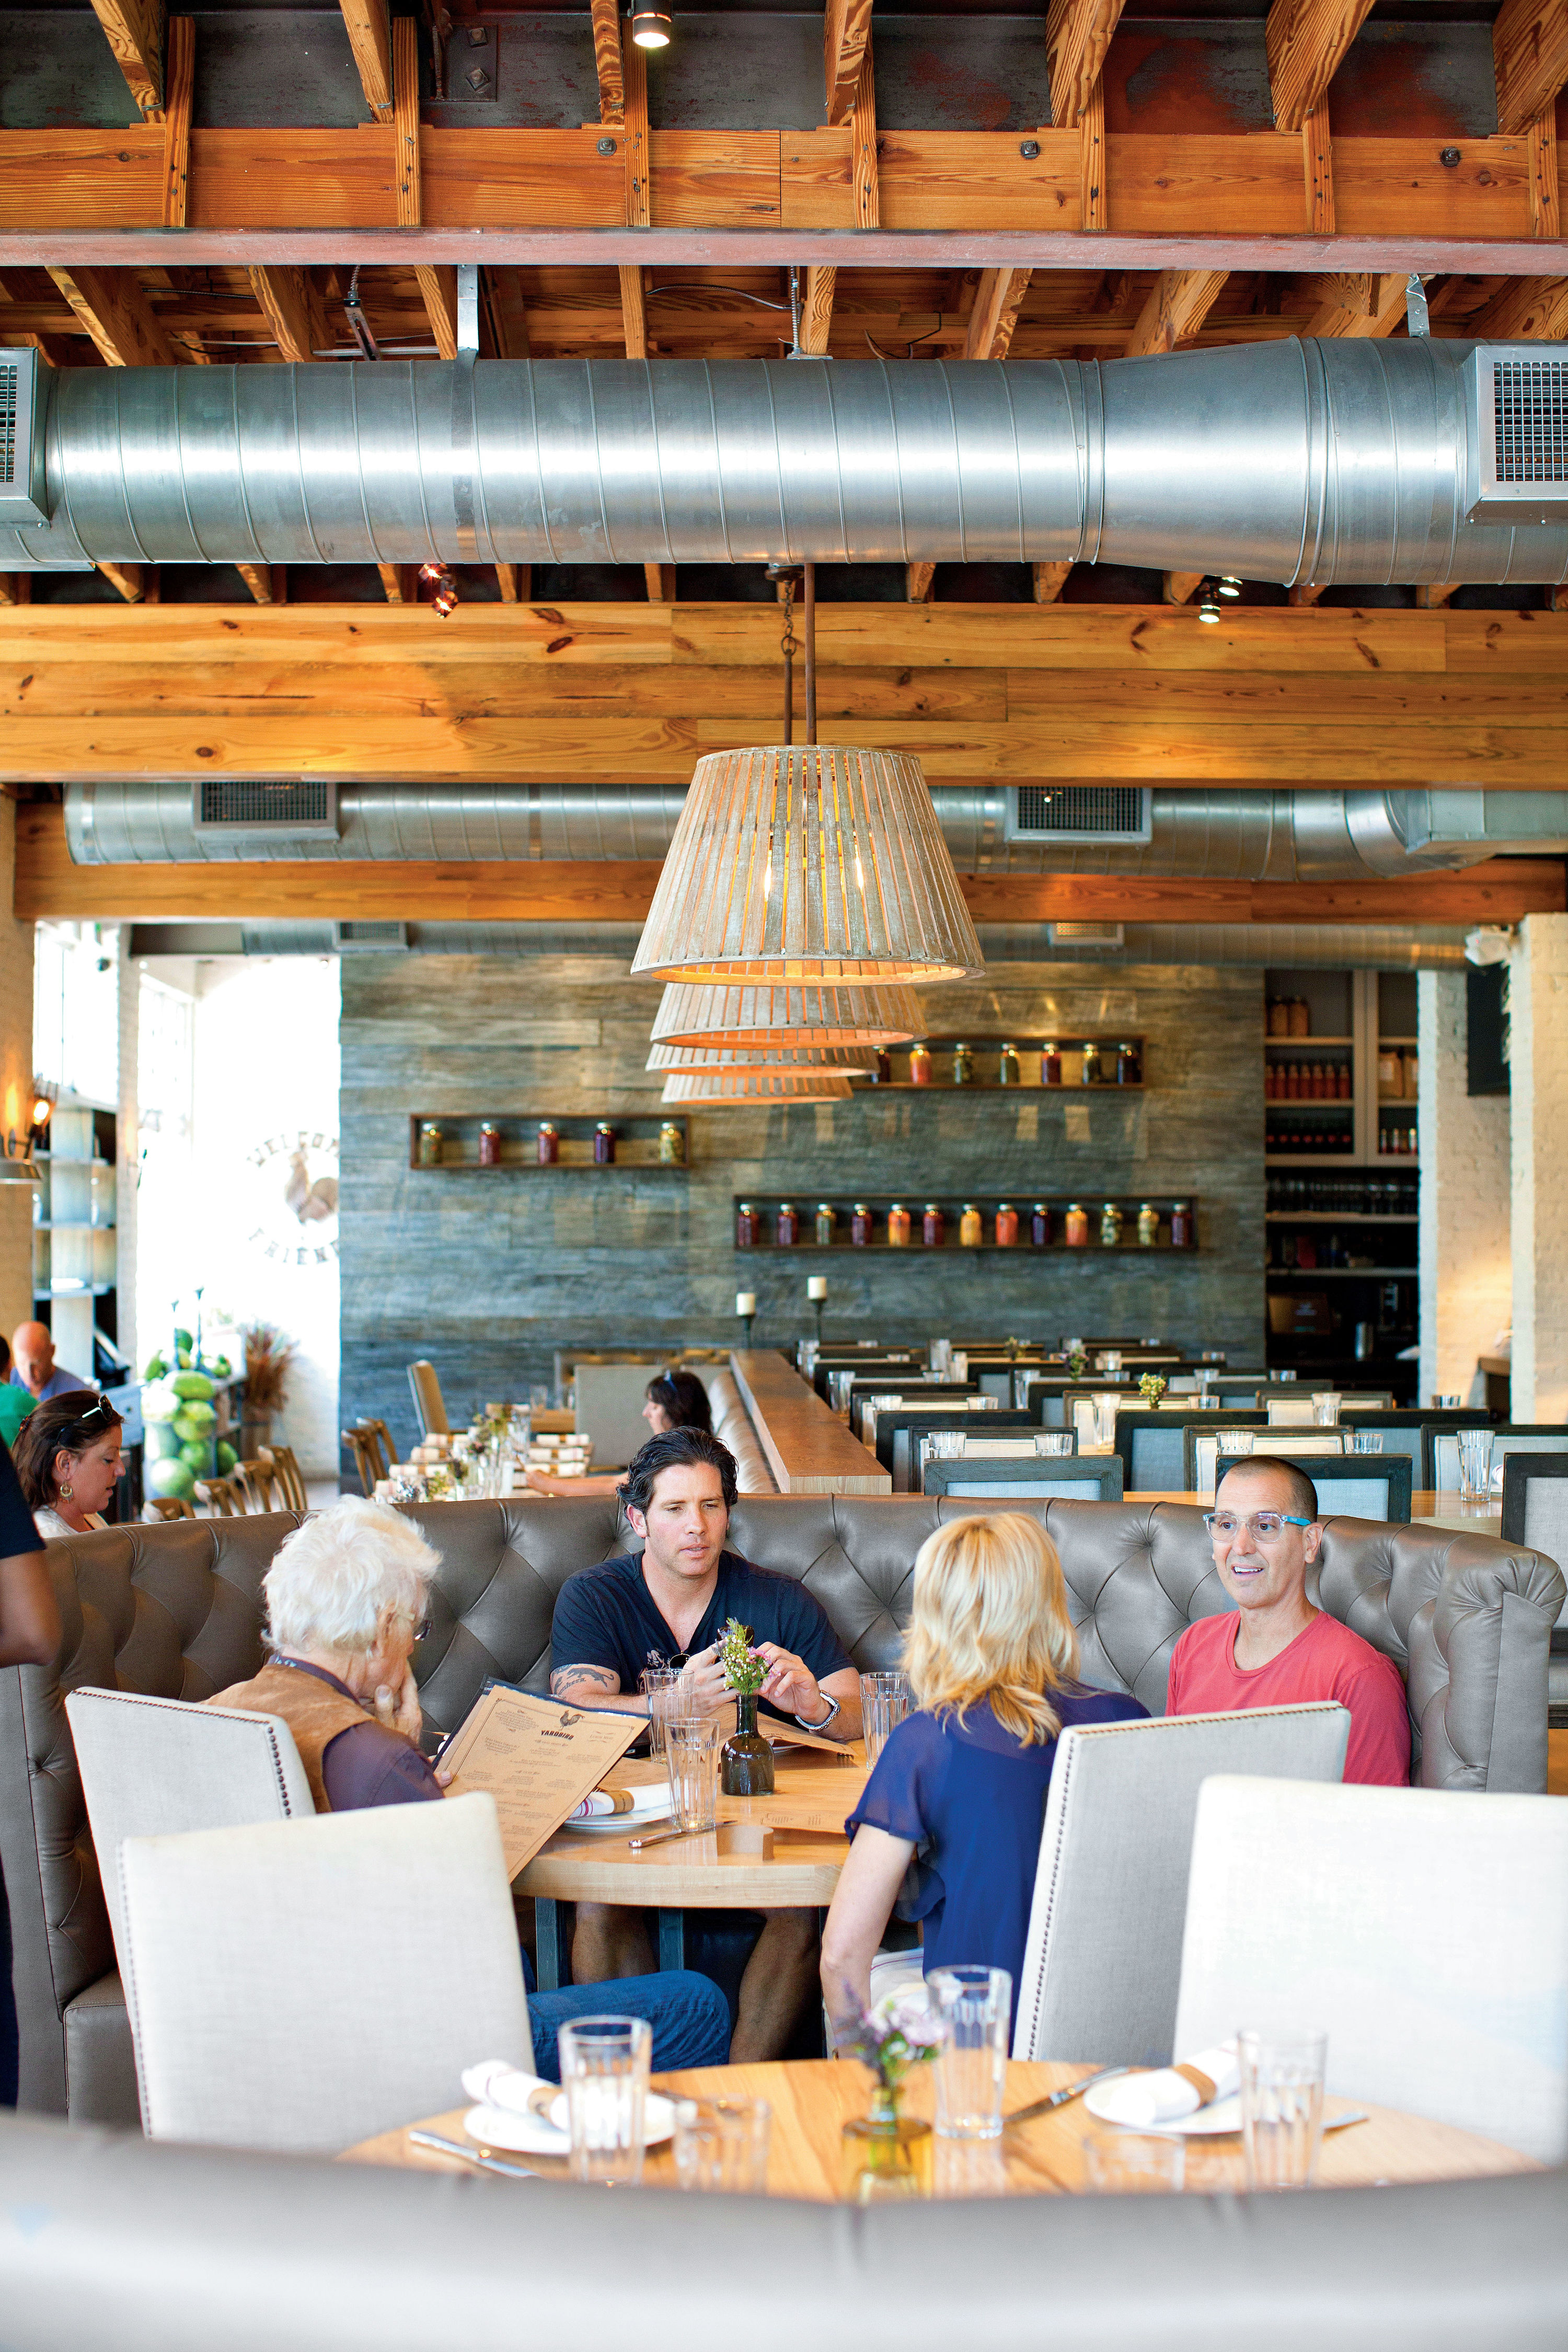 The South's Tastiest Towns: Miami